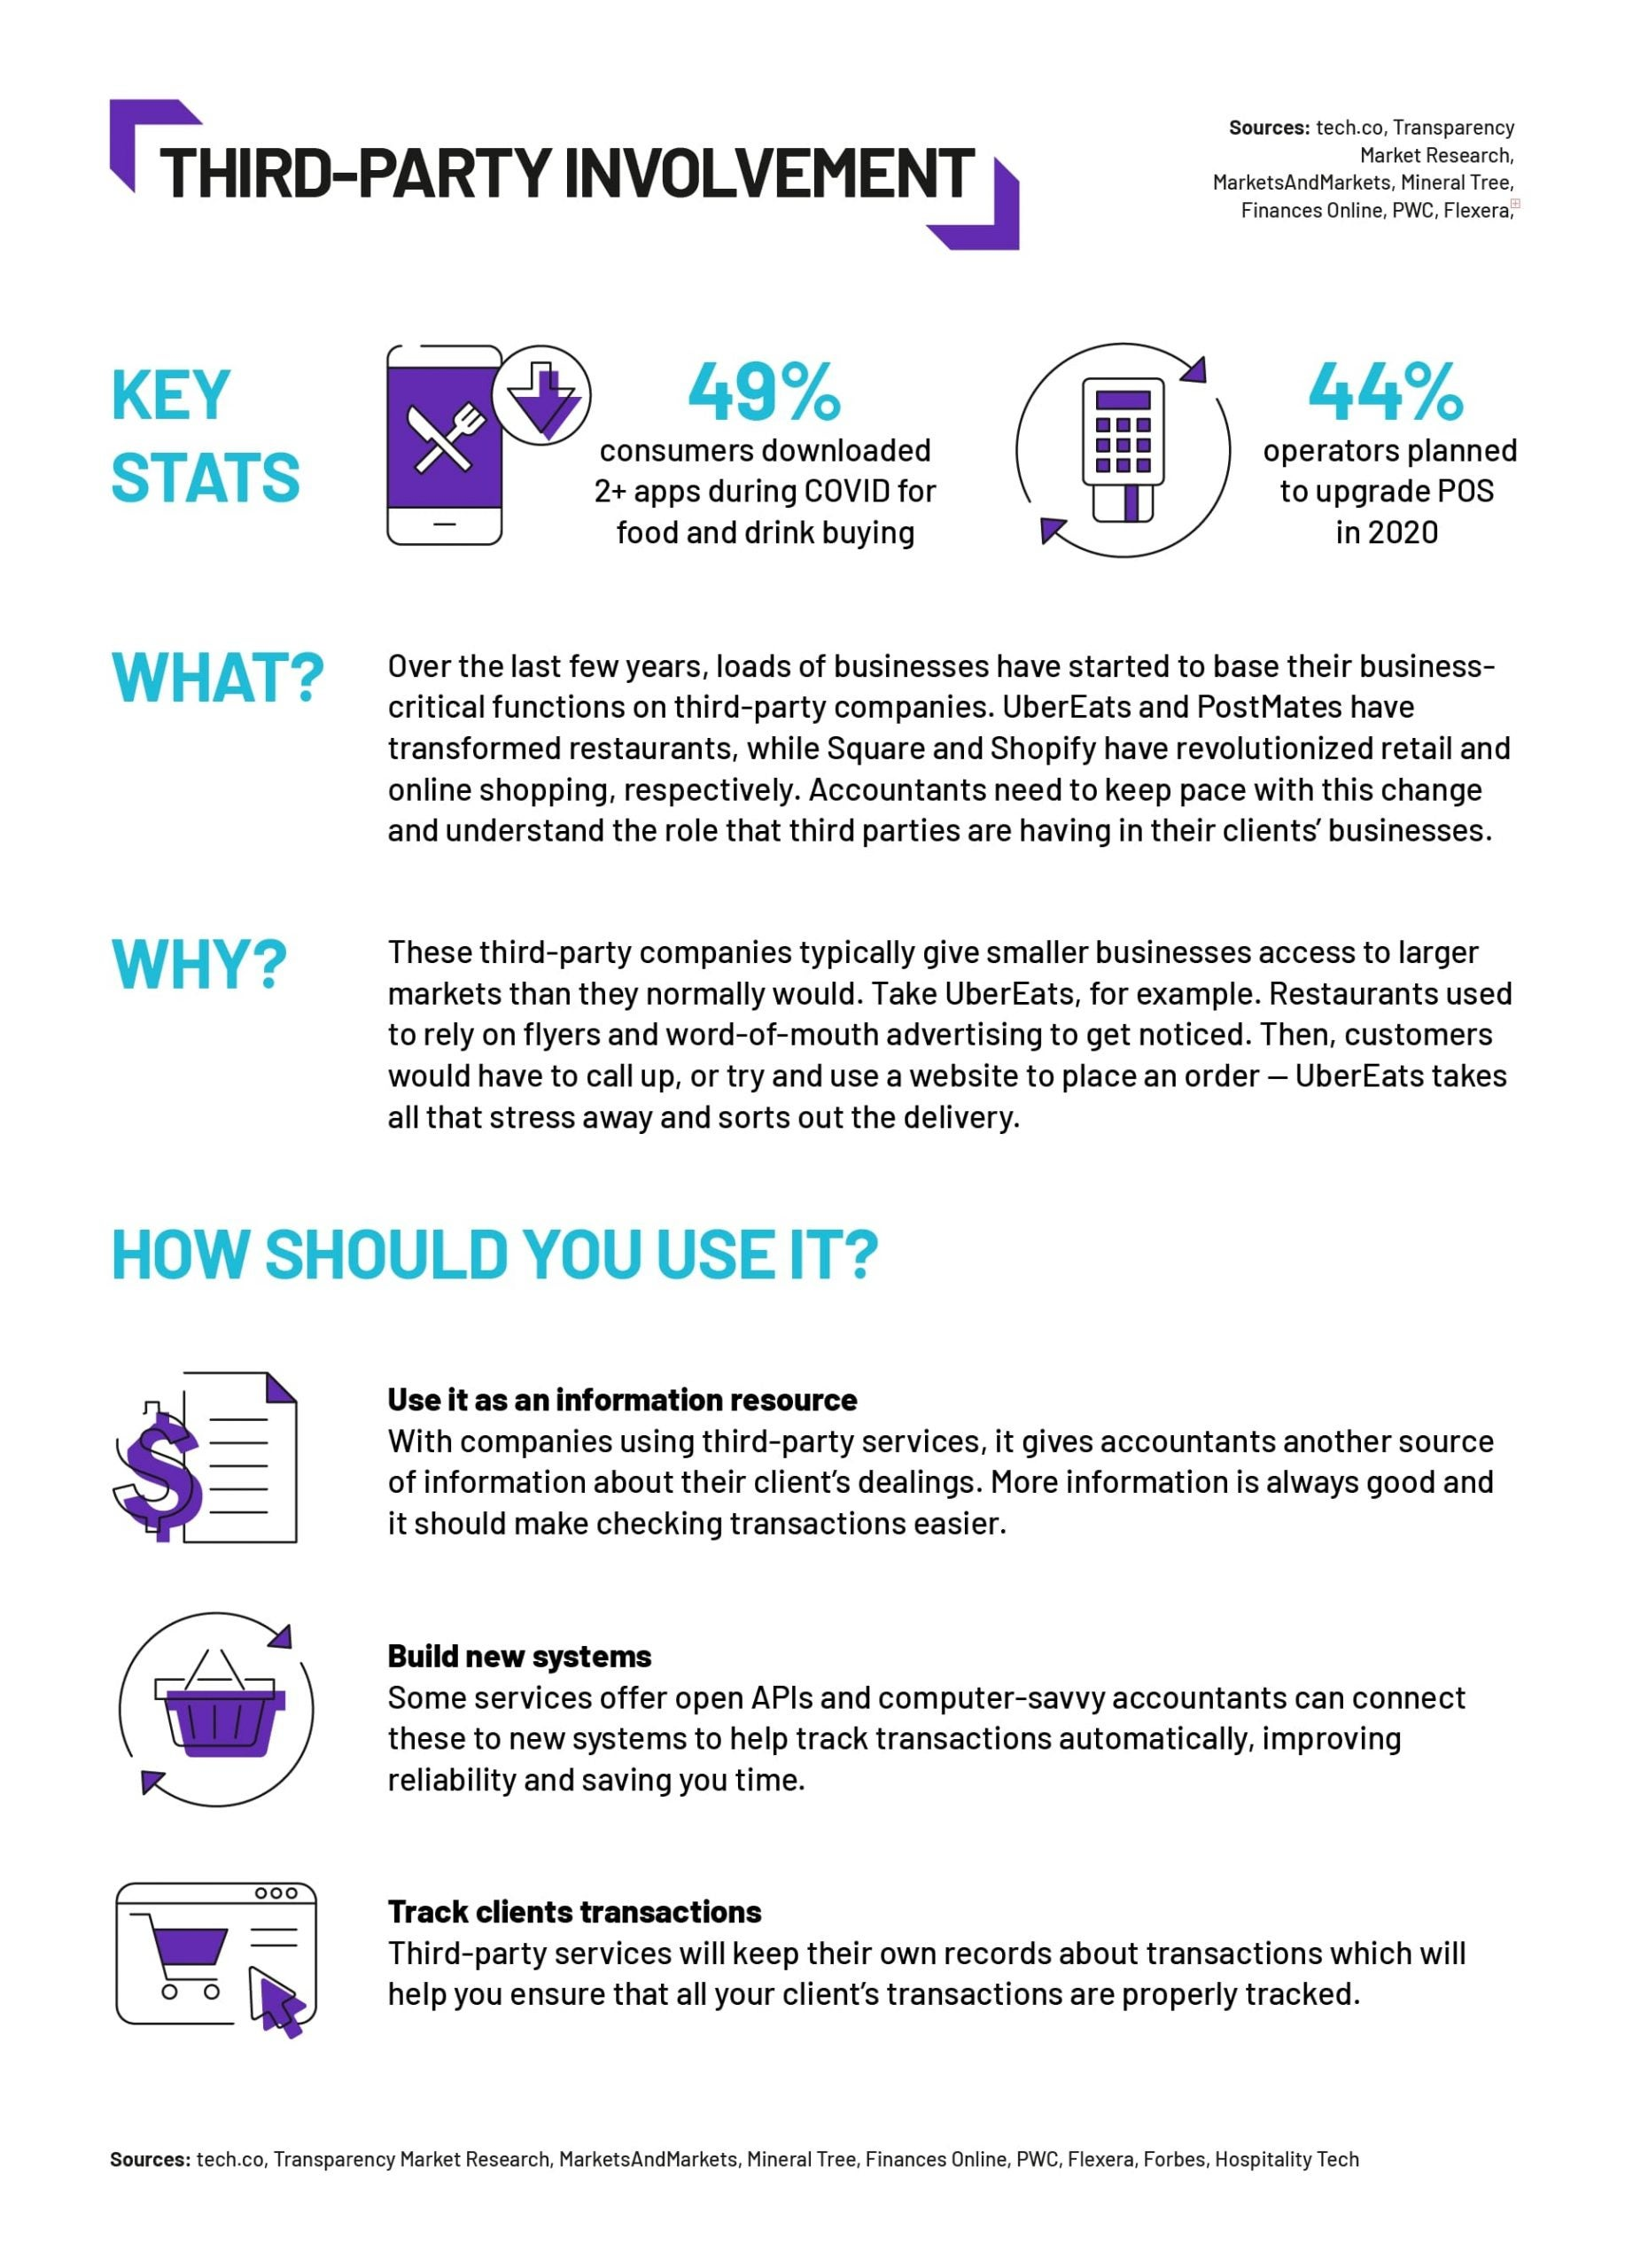 accounting trend - third party involvement - tech.co infographic